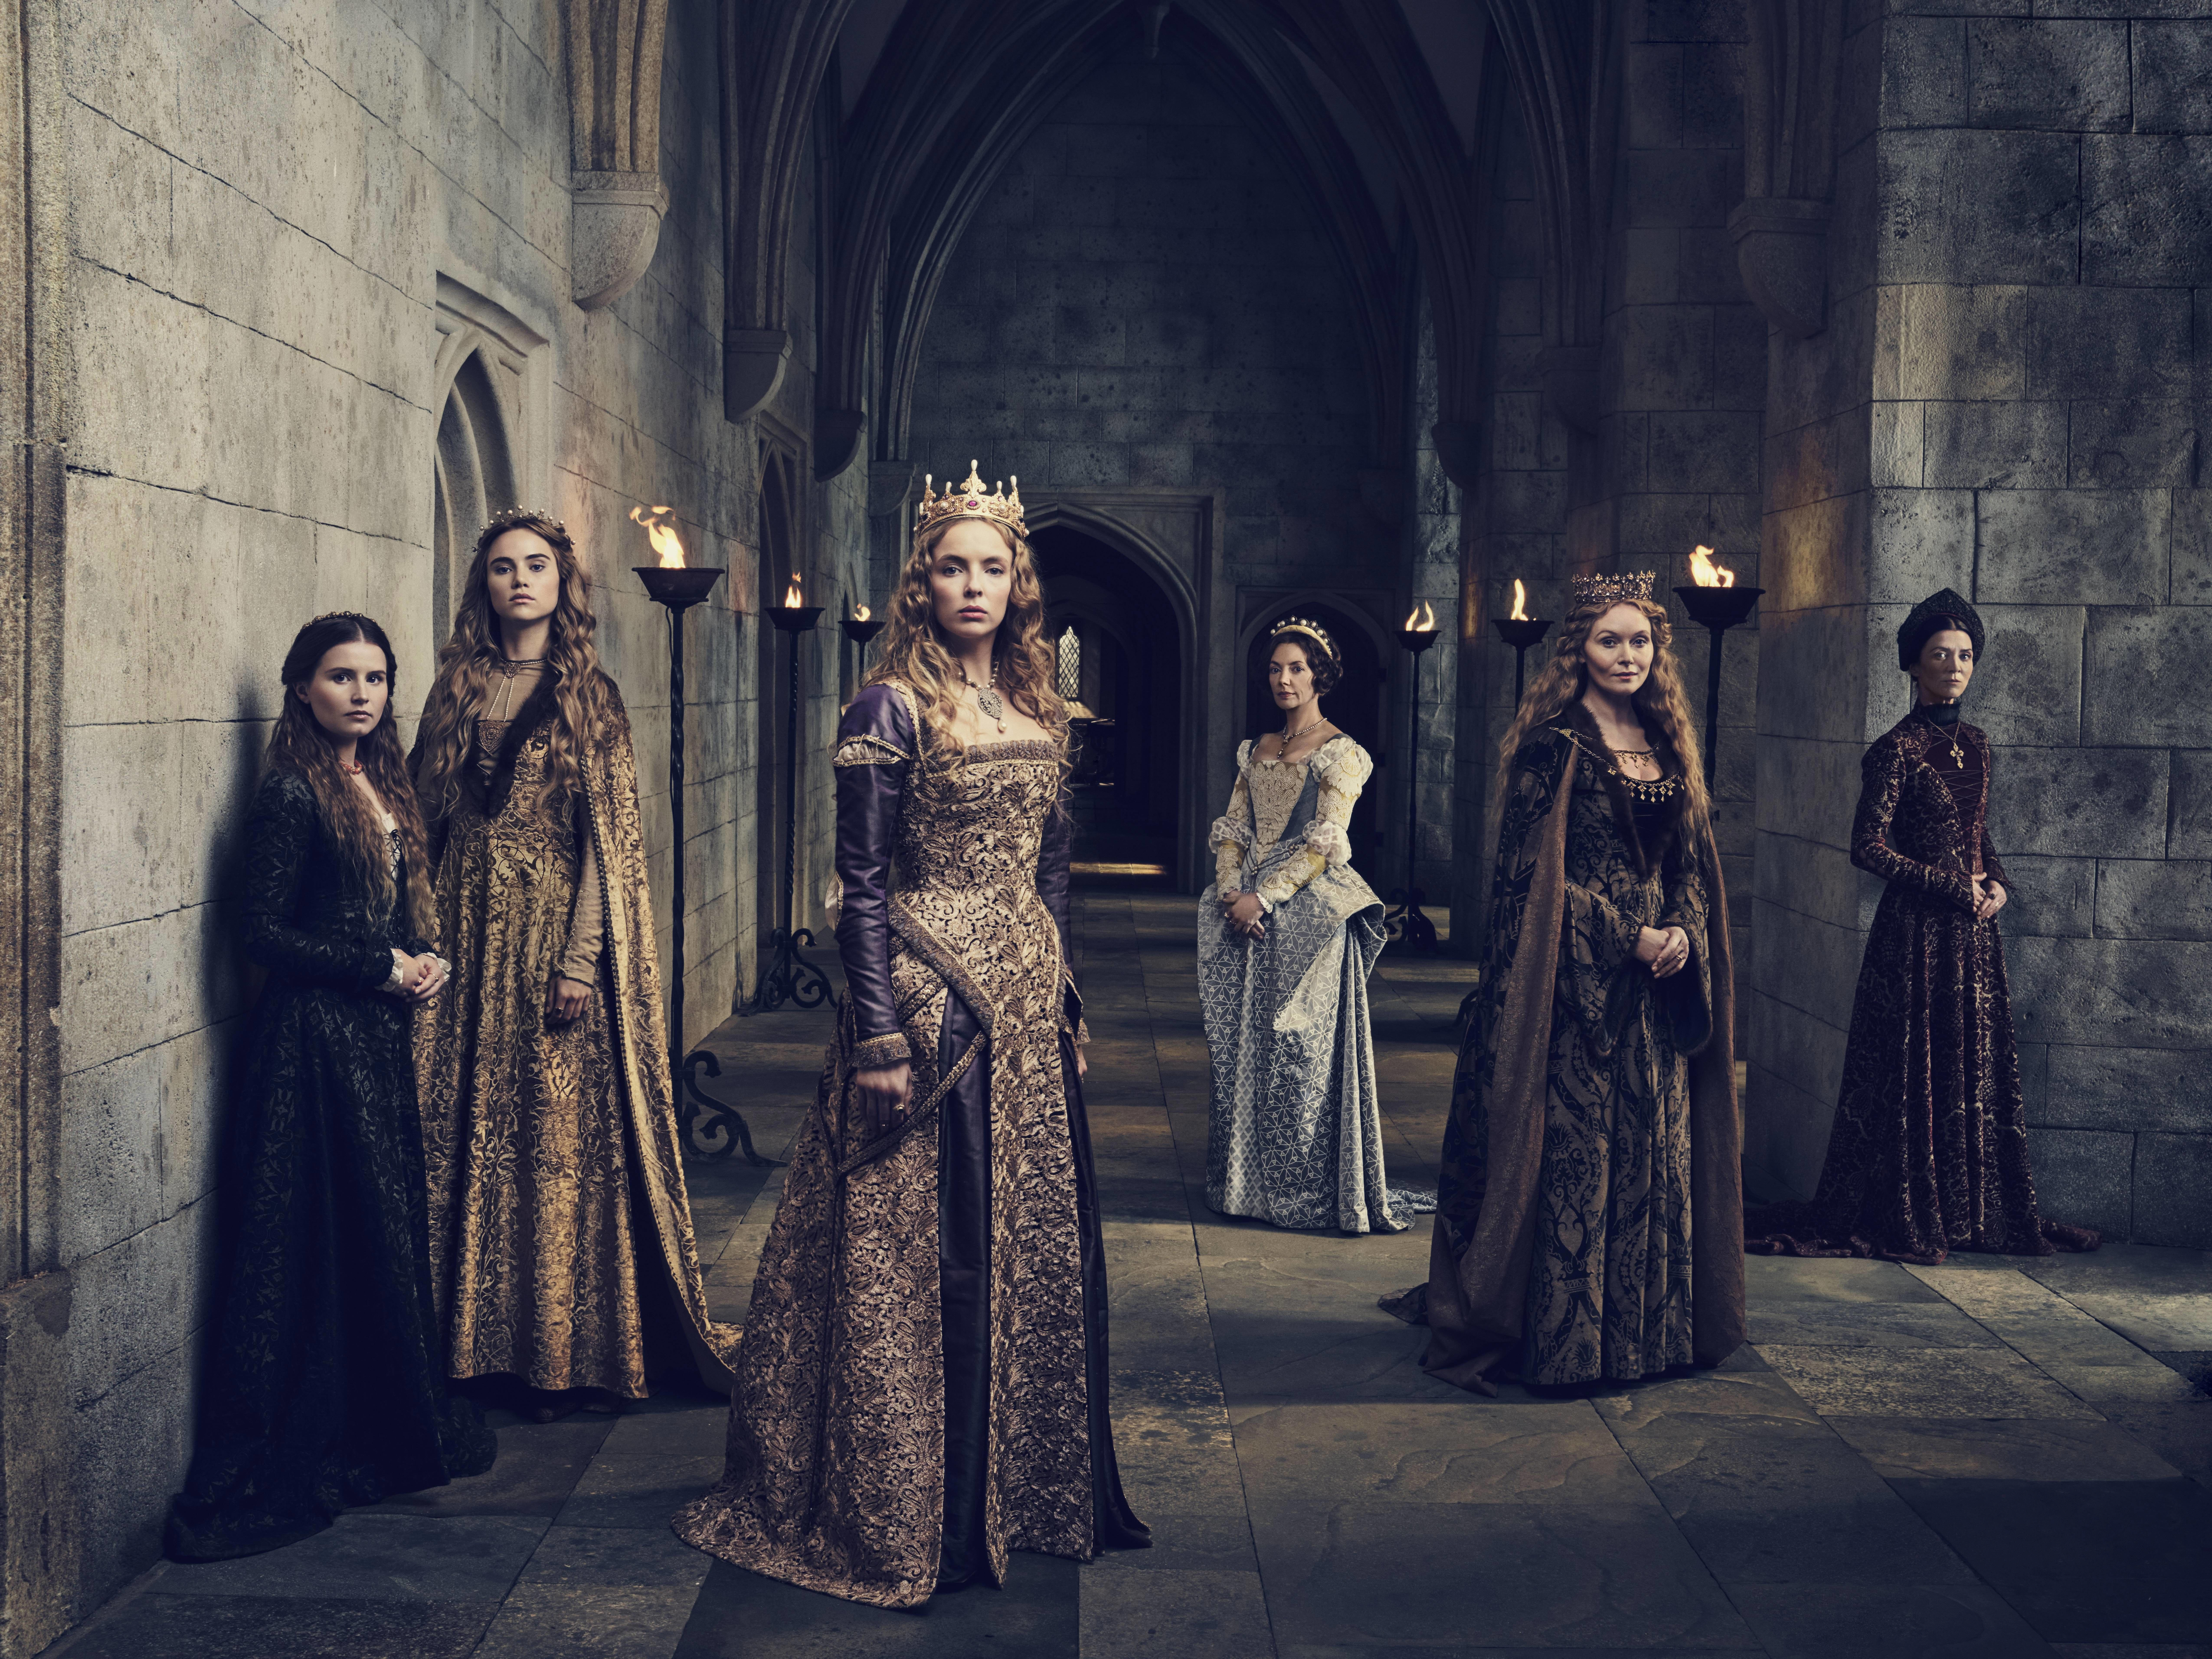 The white princess hd tv shows 4k wallpapers images - 10k wallpaper nature ...